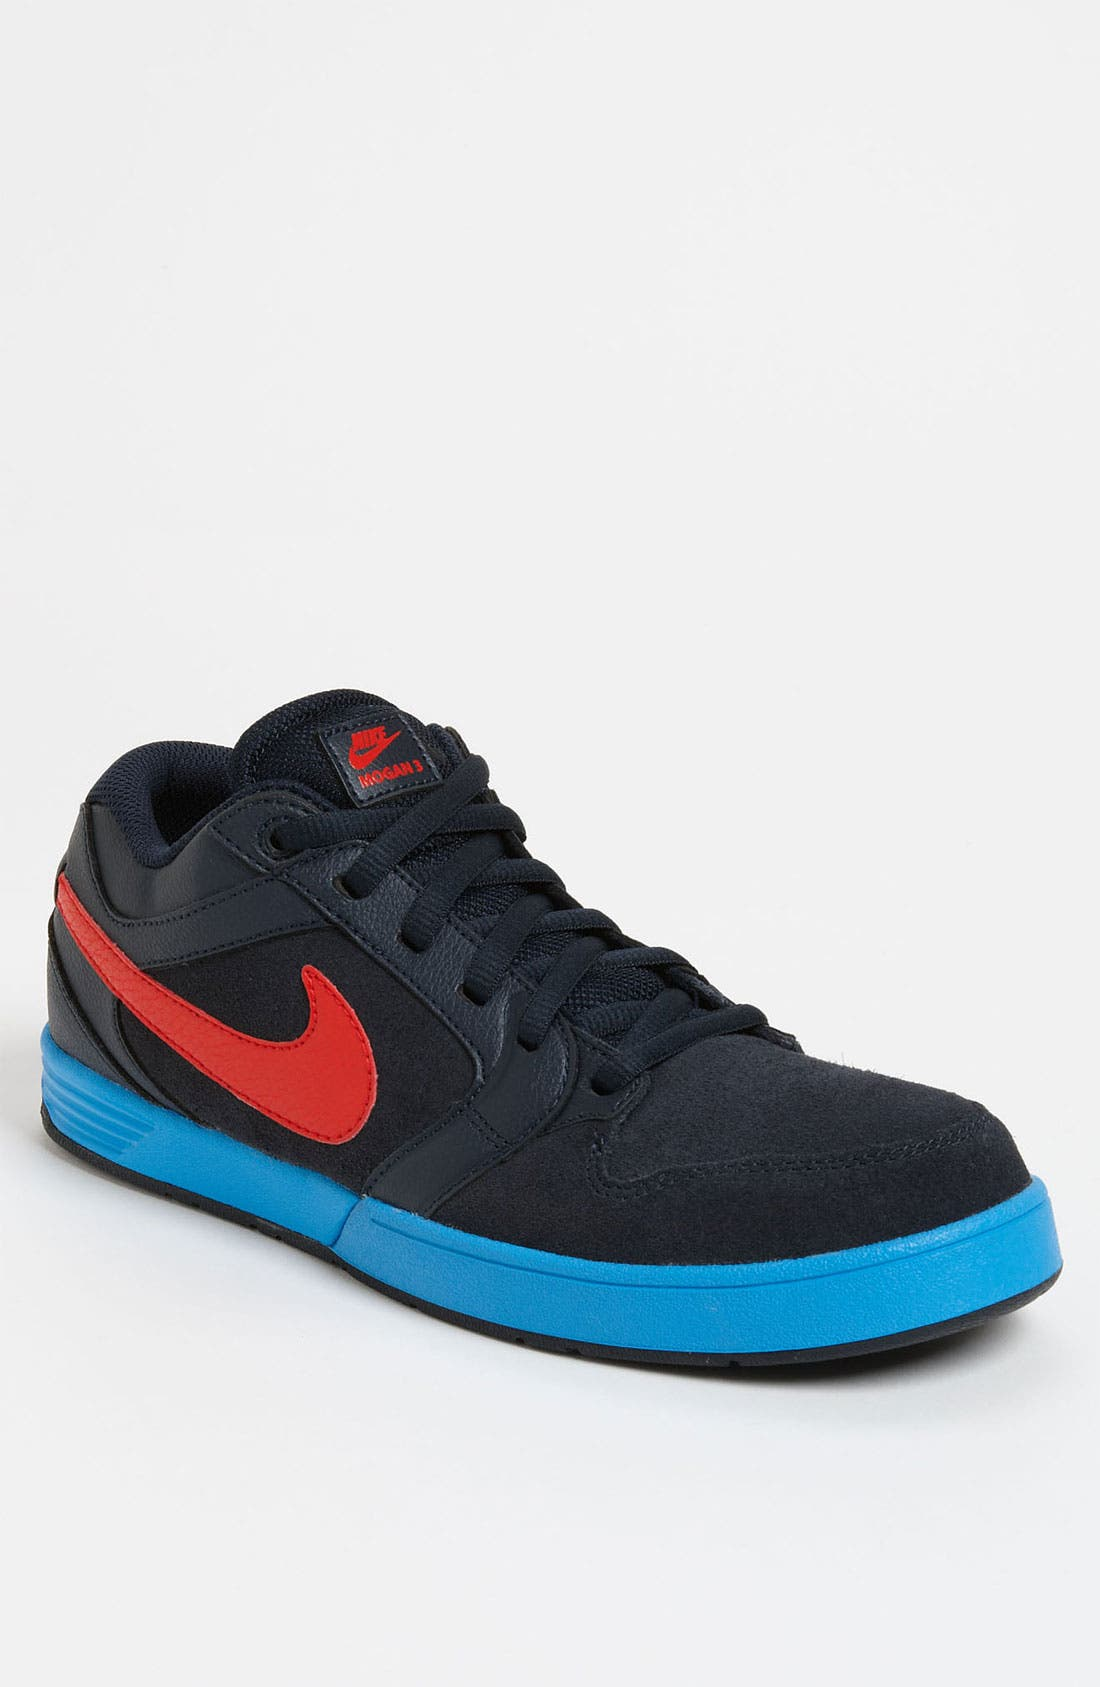 Main Image - Nike 'Mogan 3' Sneaker (Men) (Online Only)